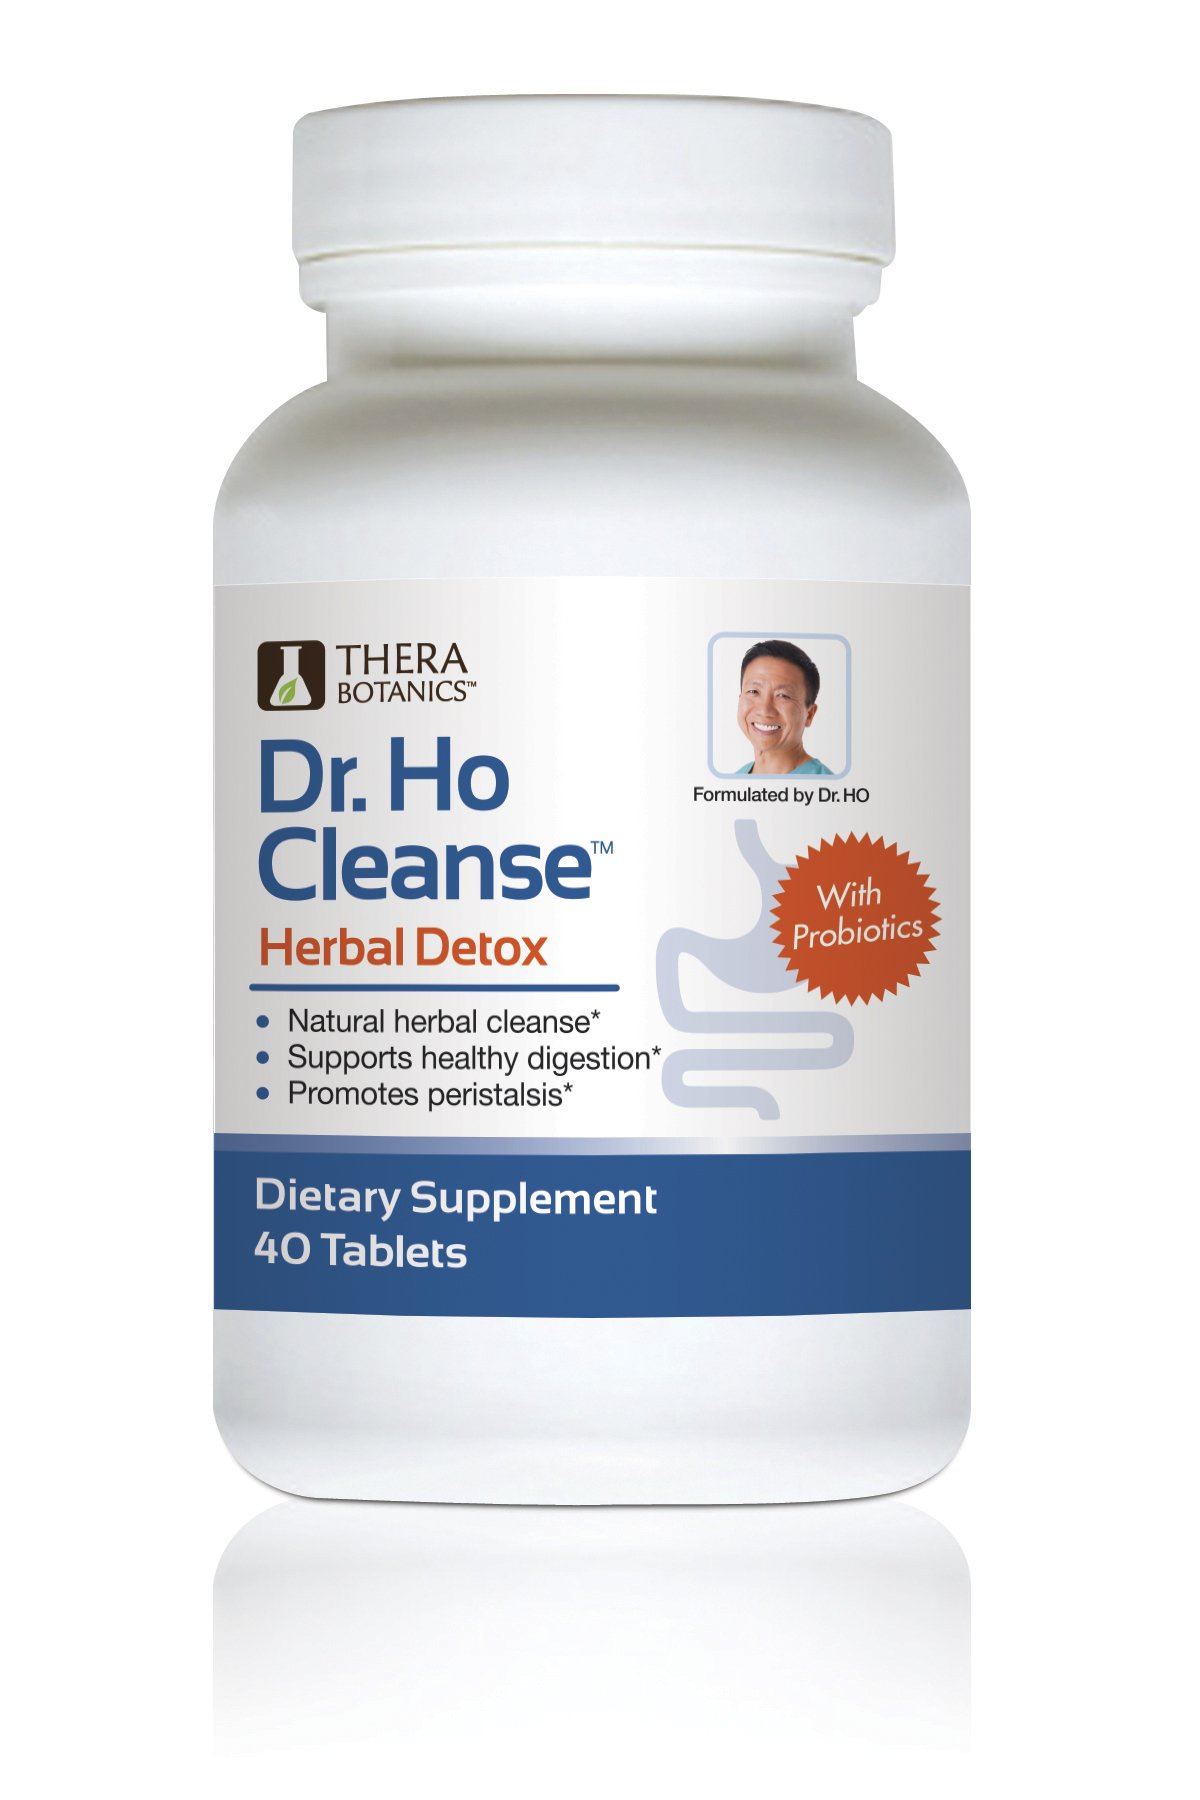 Dr. Ho Herbal Detox with Probiotics | Reduce Toxins and Impurities | Helps Cleanse Your